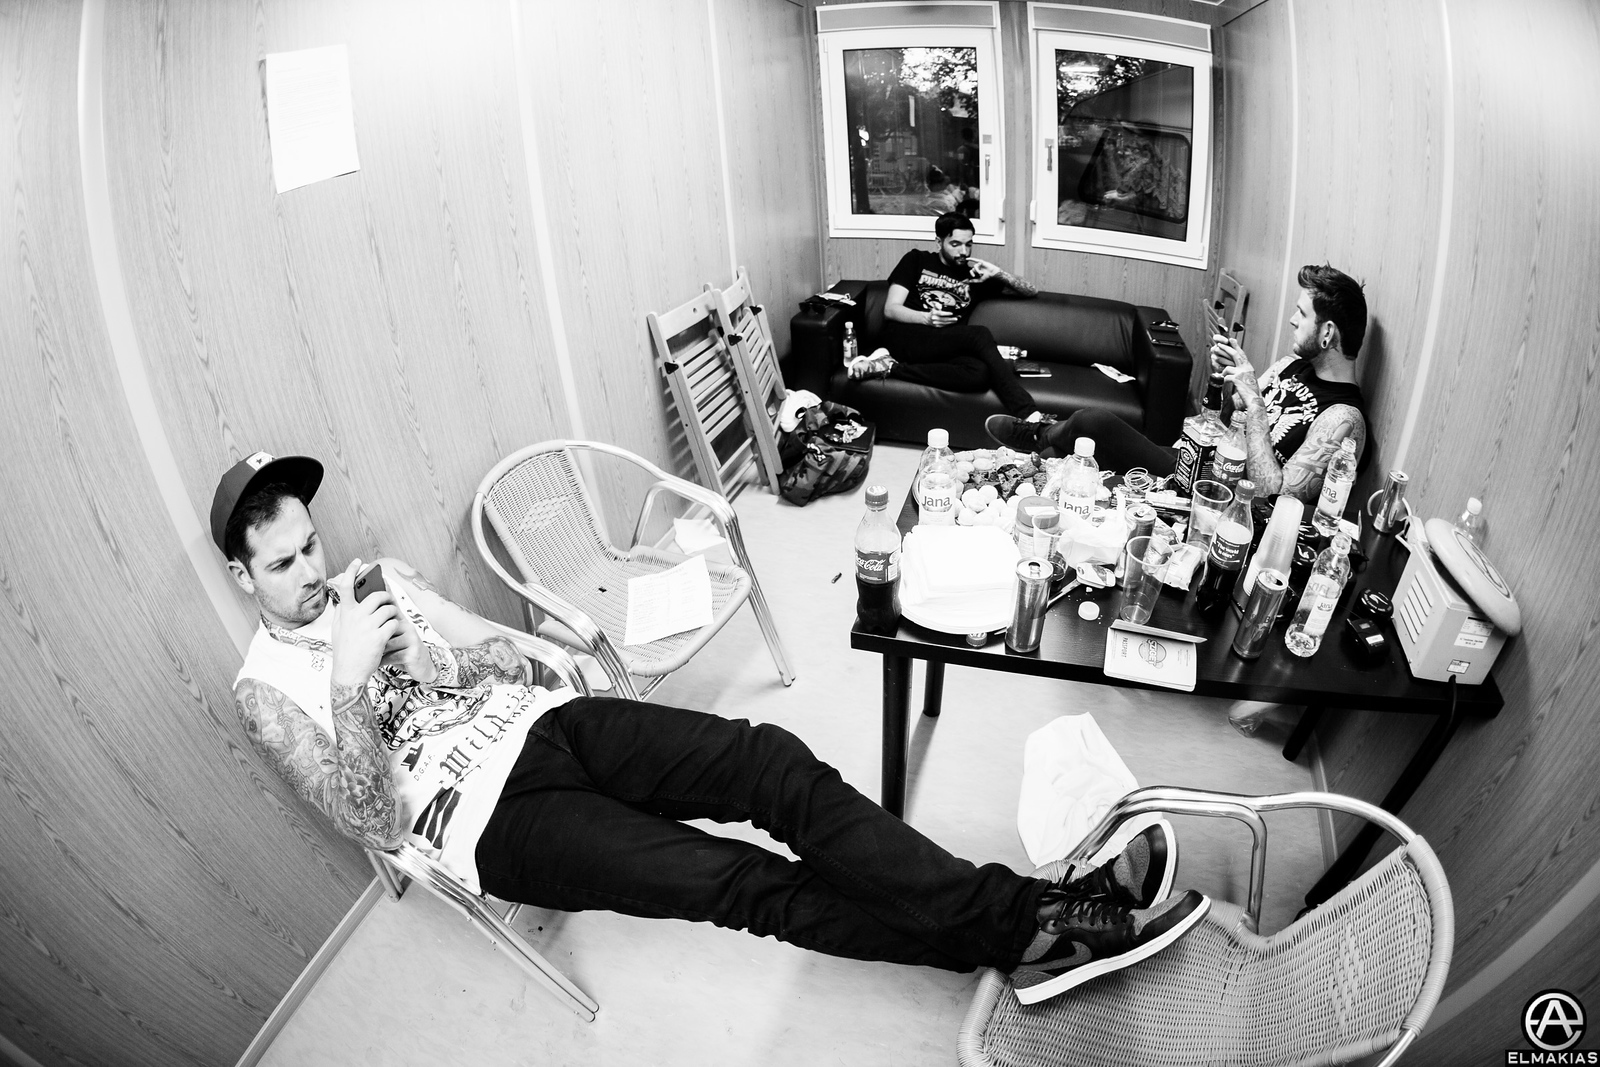 After the set hanging in the dressing room at Sziget Festival!